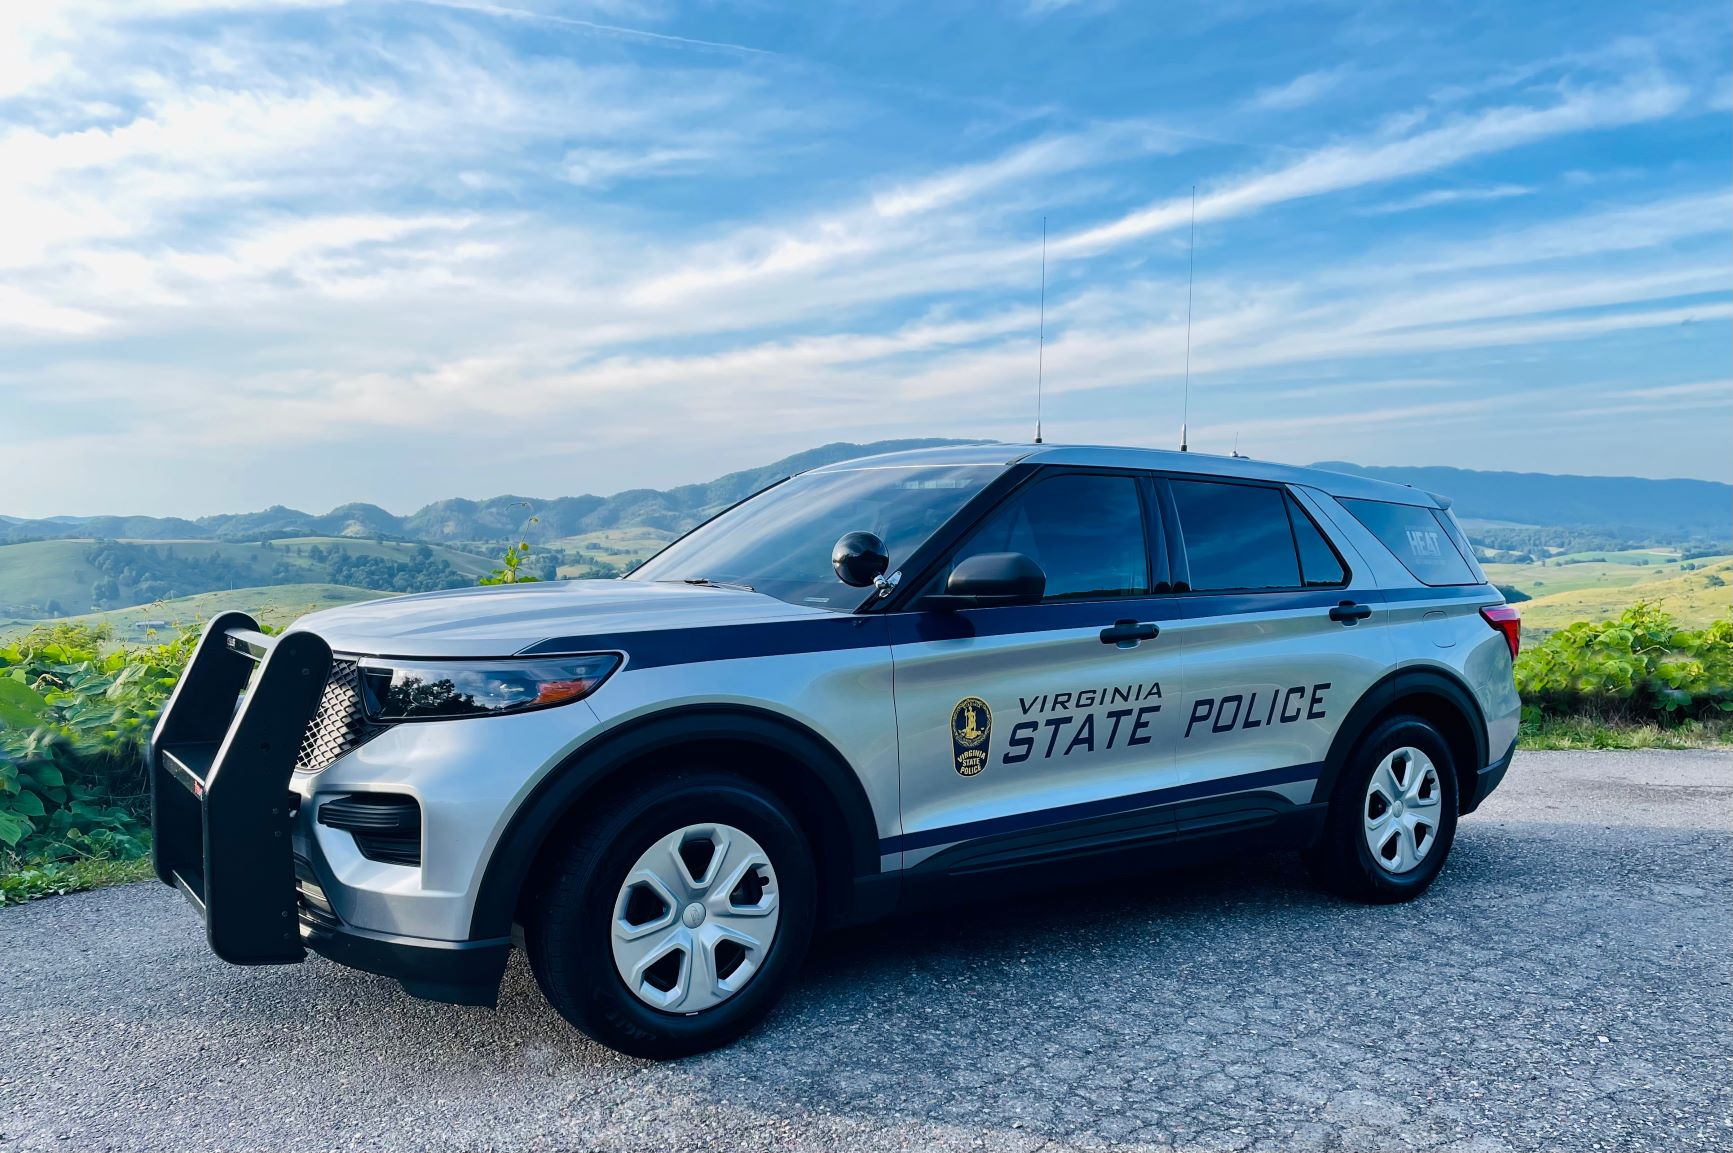 <strong>Virginia State Police</strong>